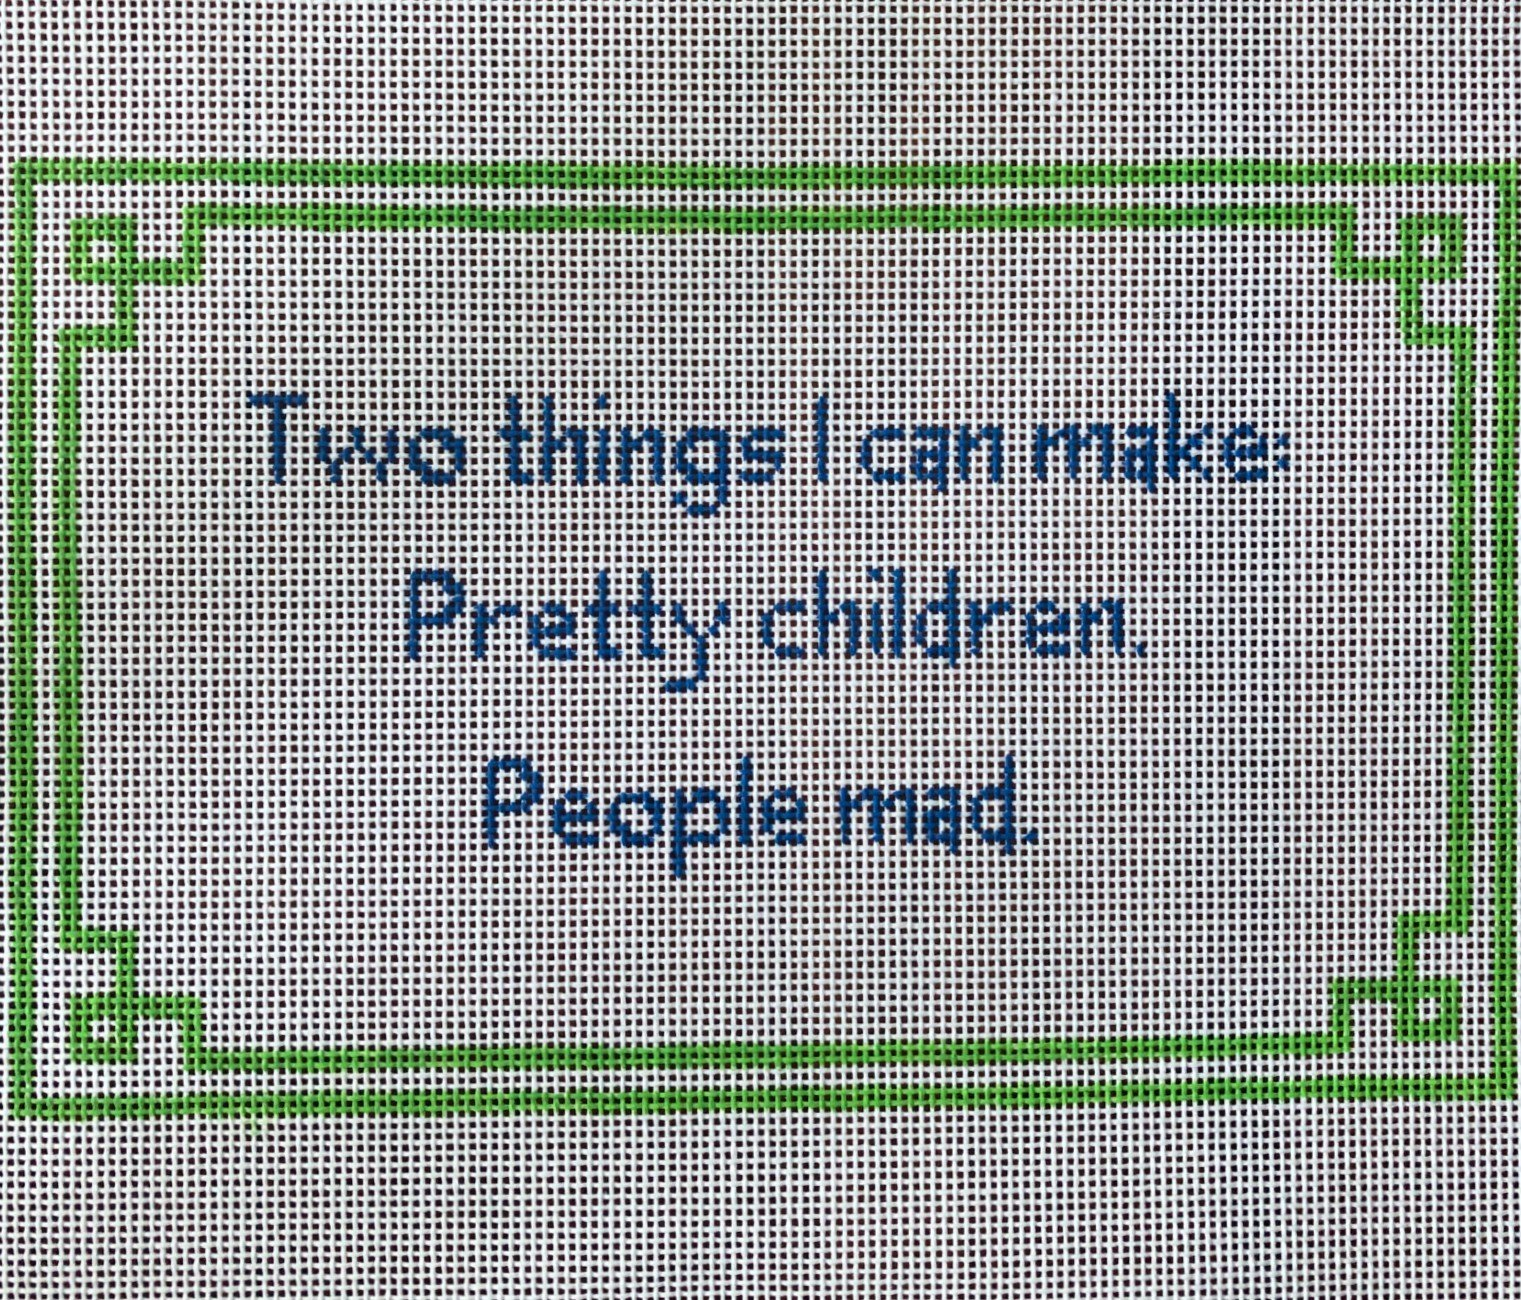 Jessica Tongel - Two Things I Can Make...